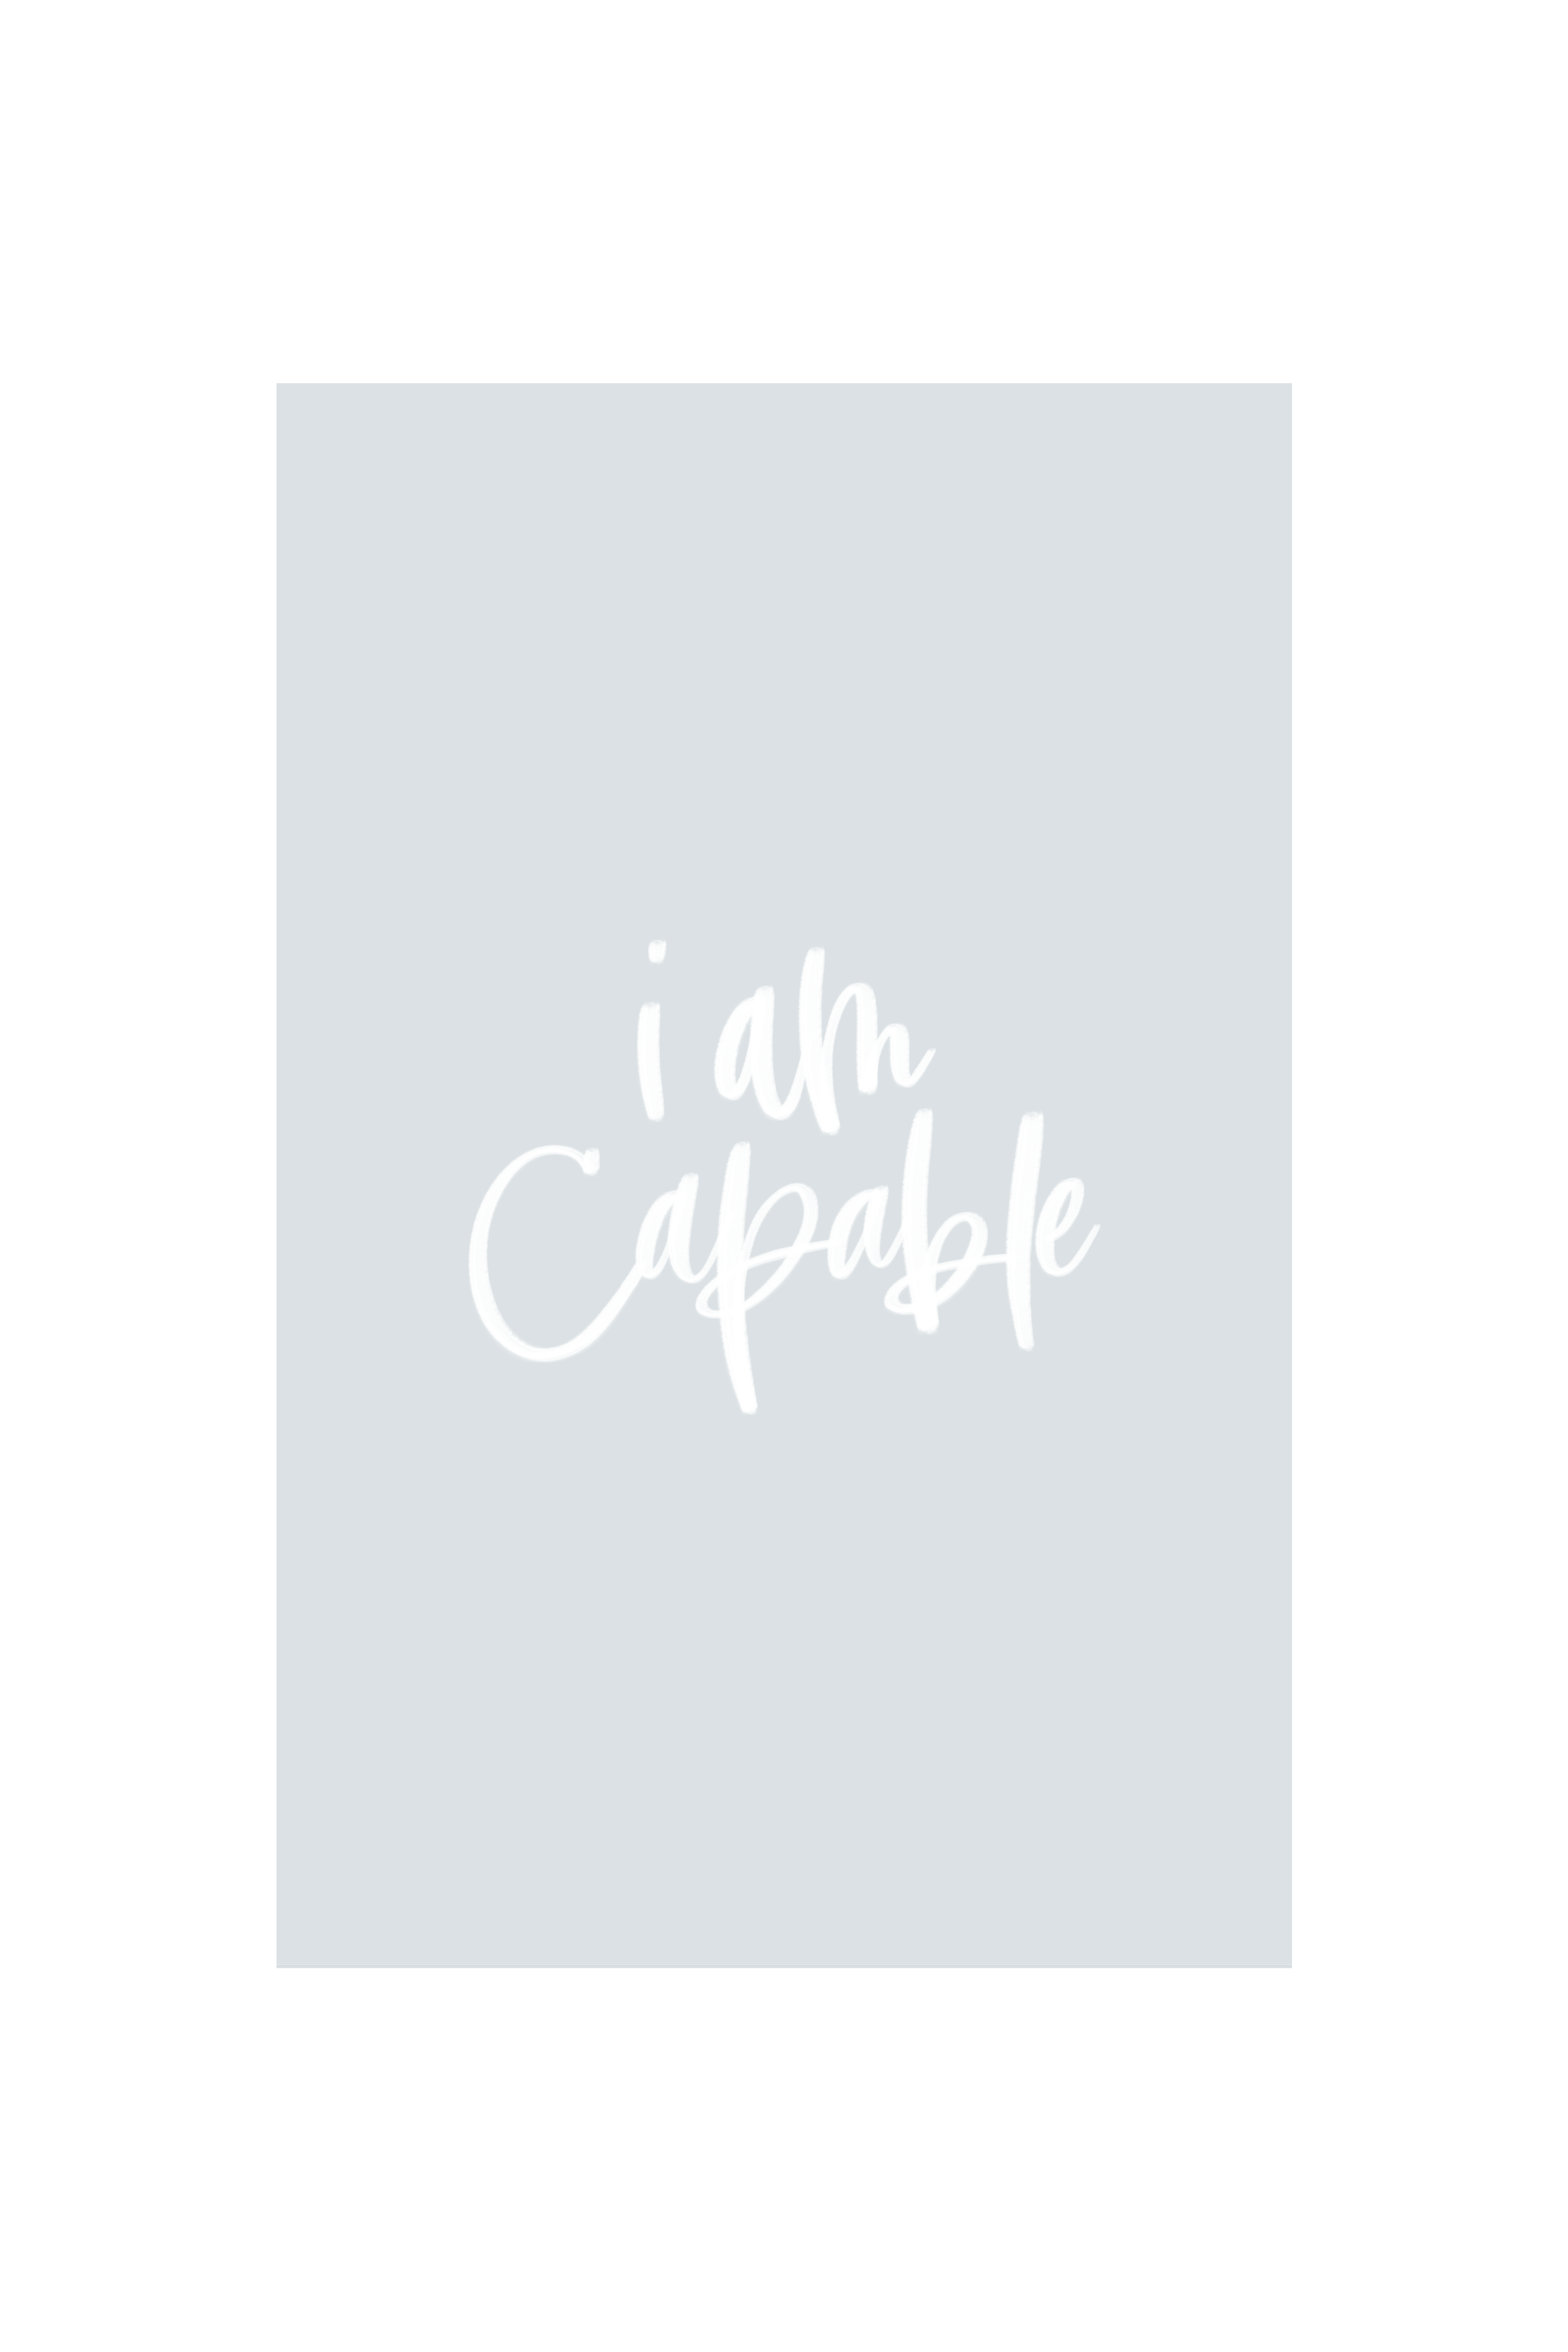 Downloadable Phone Backgrounds   Jennifer Diaz   Hand Lettering by Amy May Paper   I Am Capable